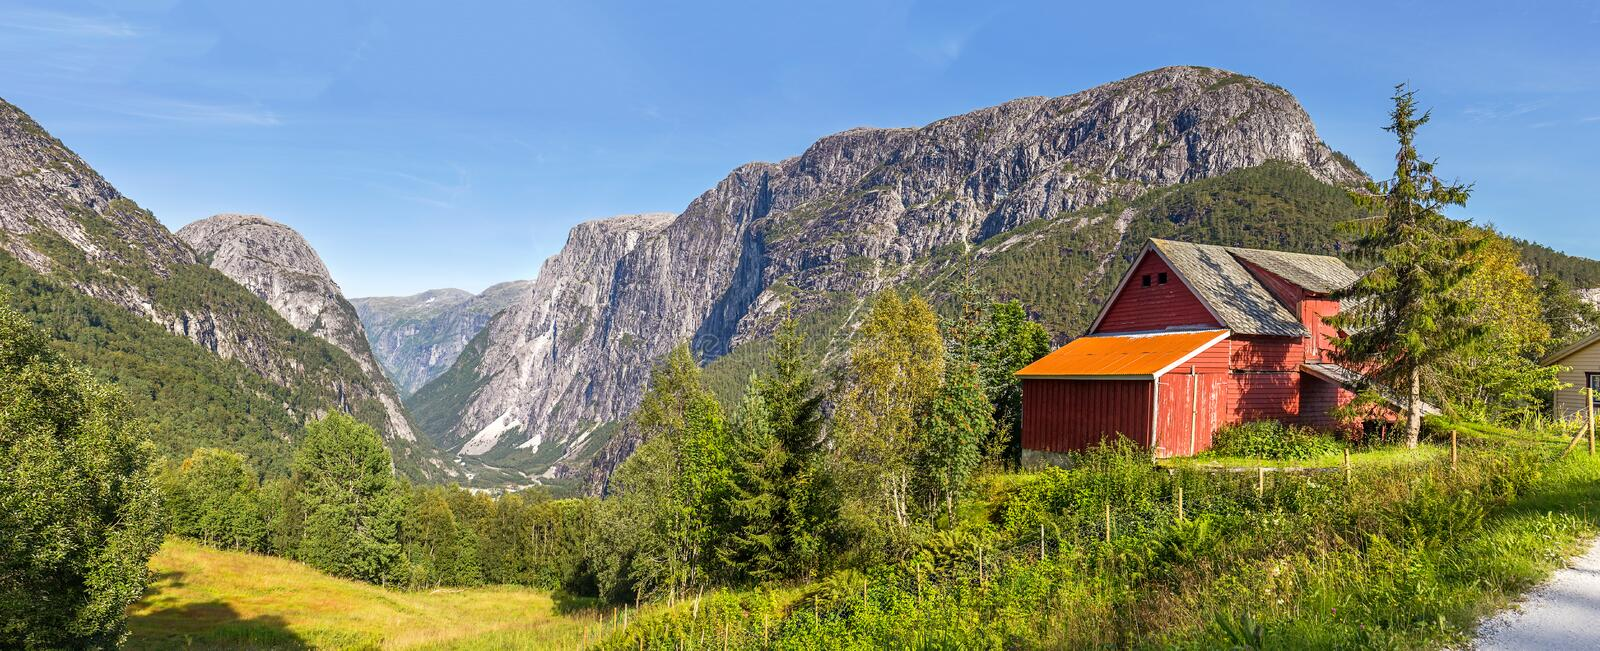 View of Stalheim with a red barn in the foreground, No royalty free stock images